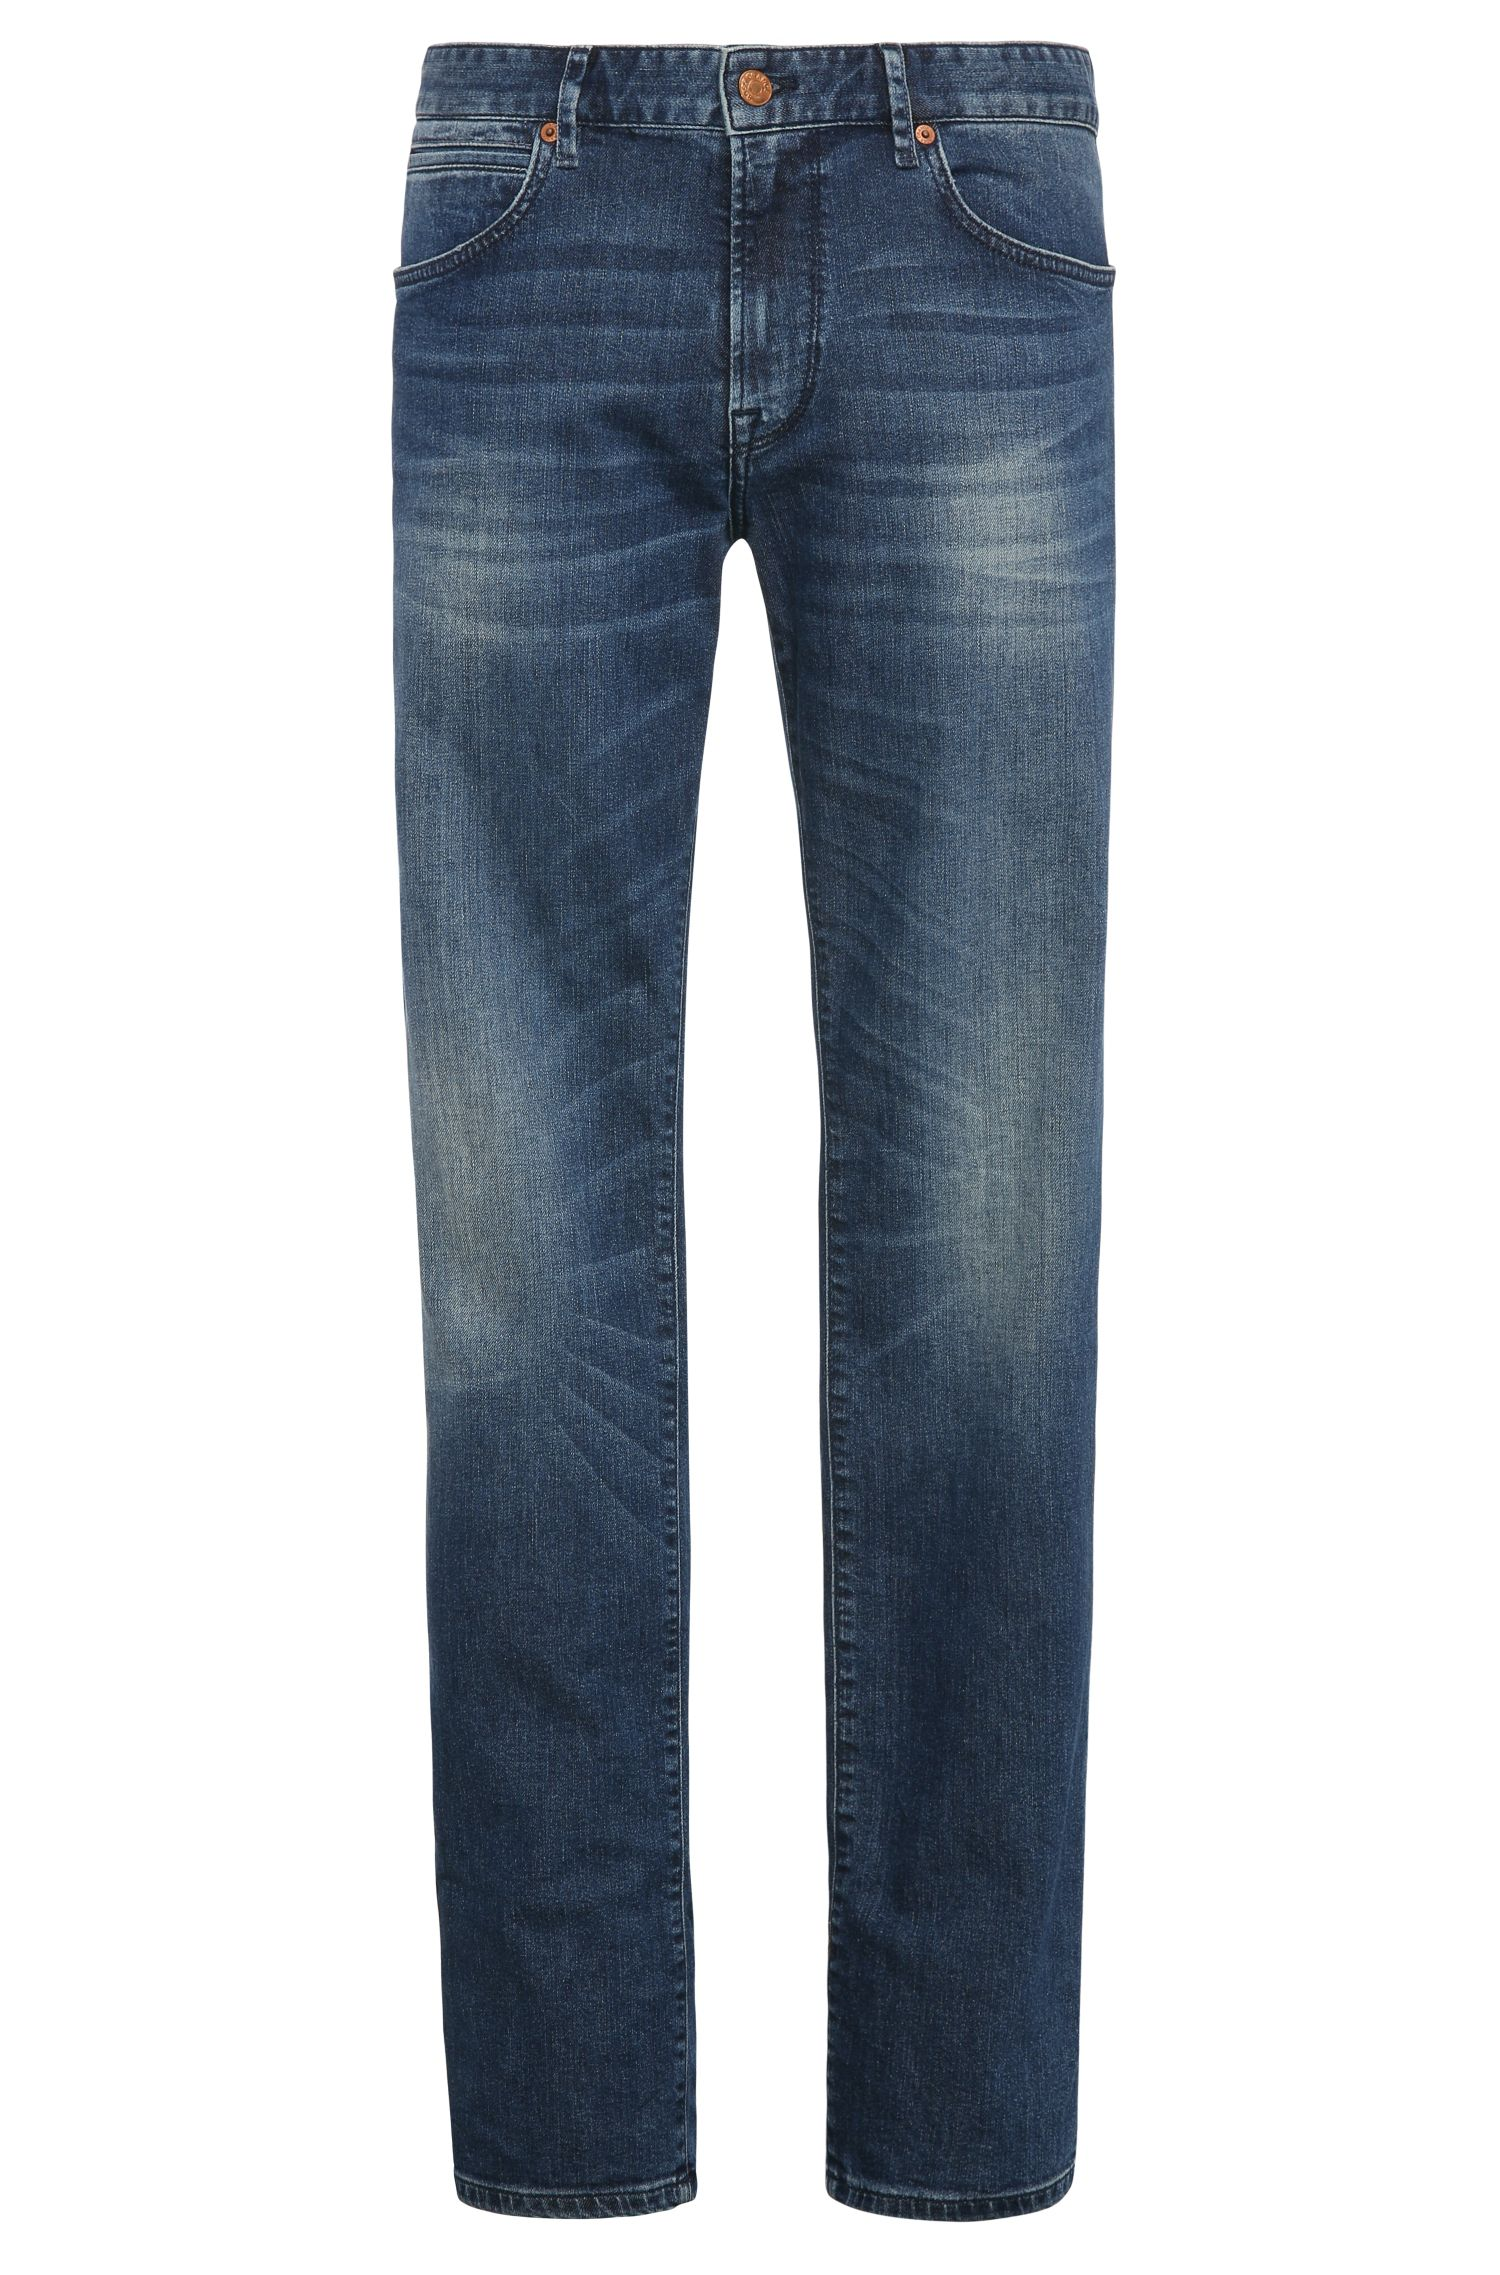 'Orange24 Barcelona' | Regular Fit, 10 oz Stretch Cotton Blend Jeans